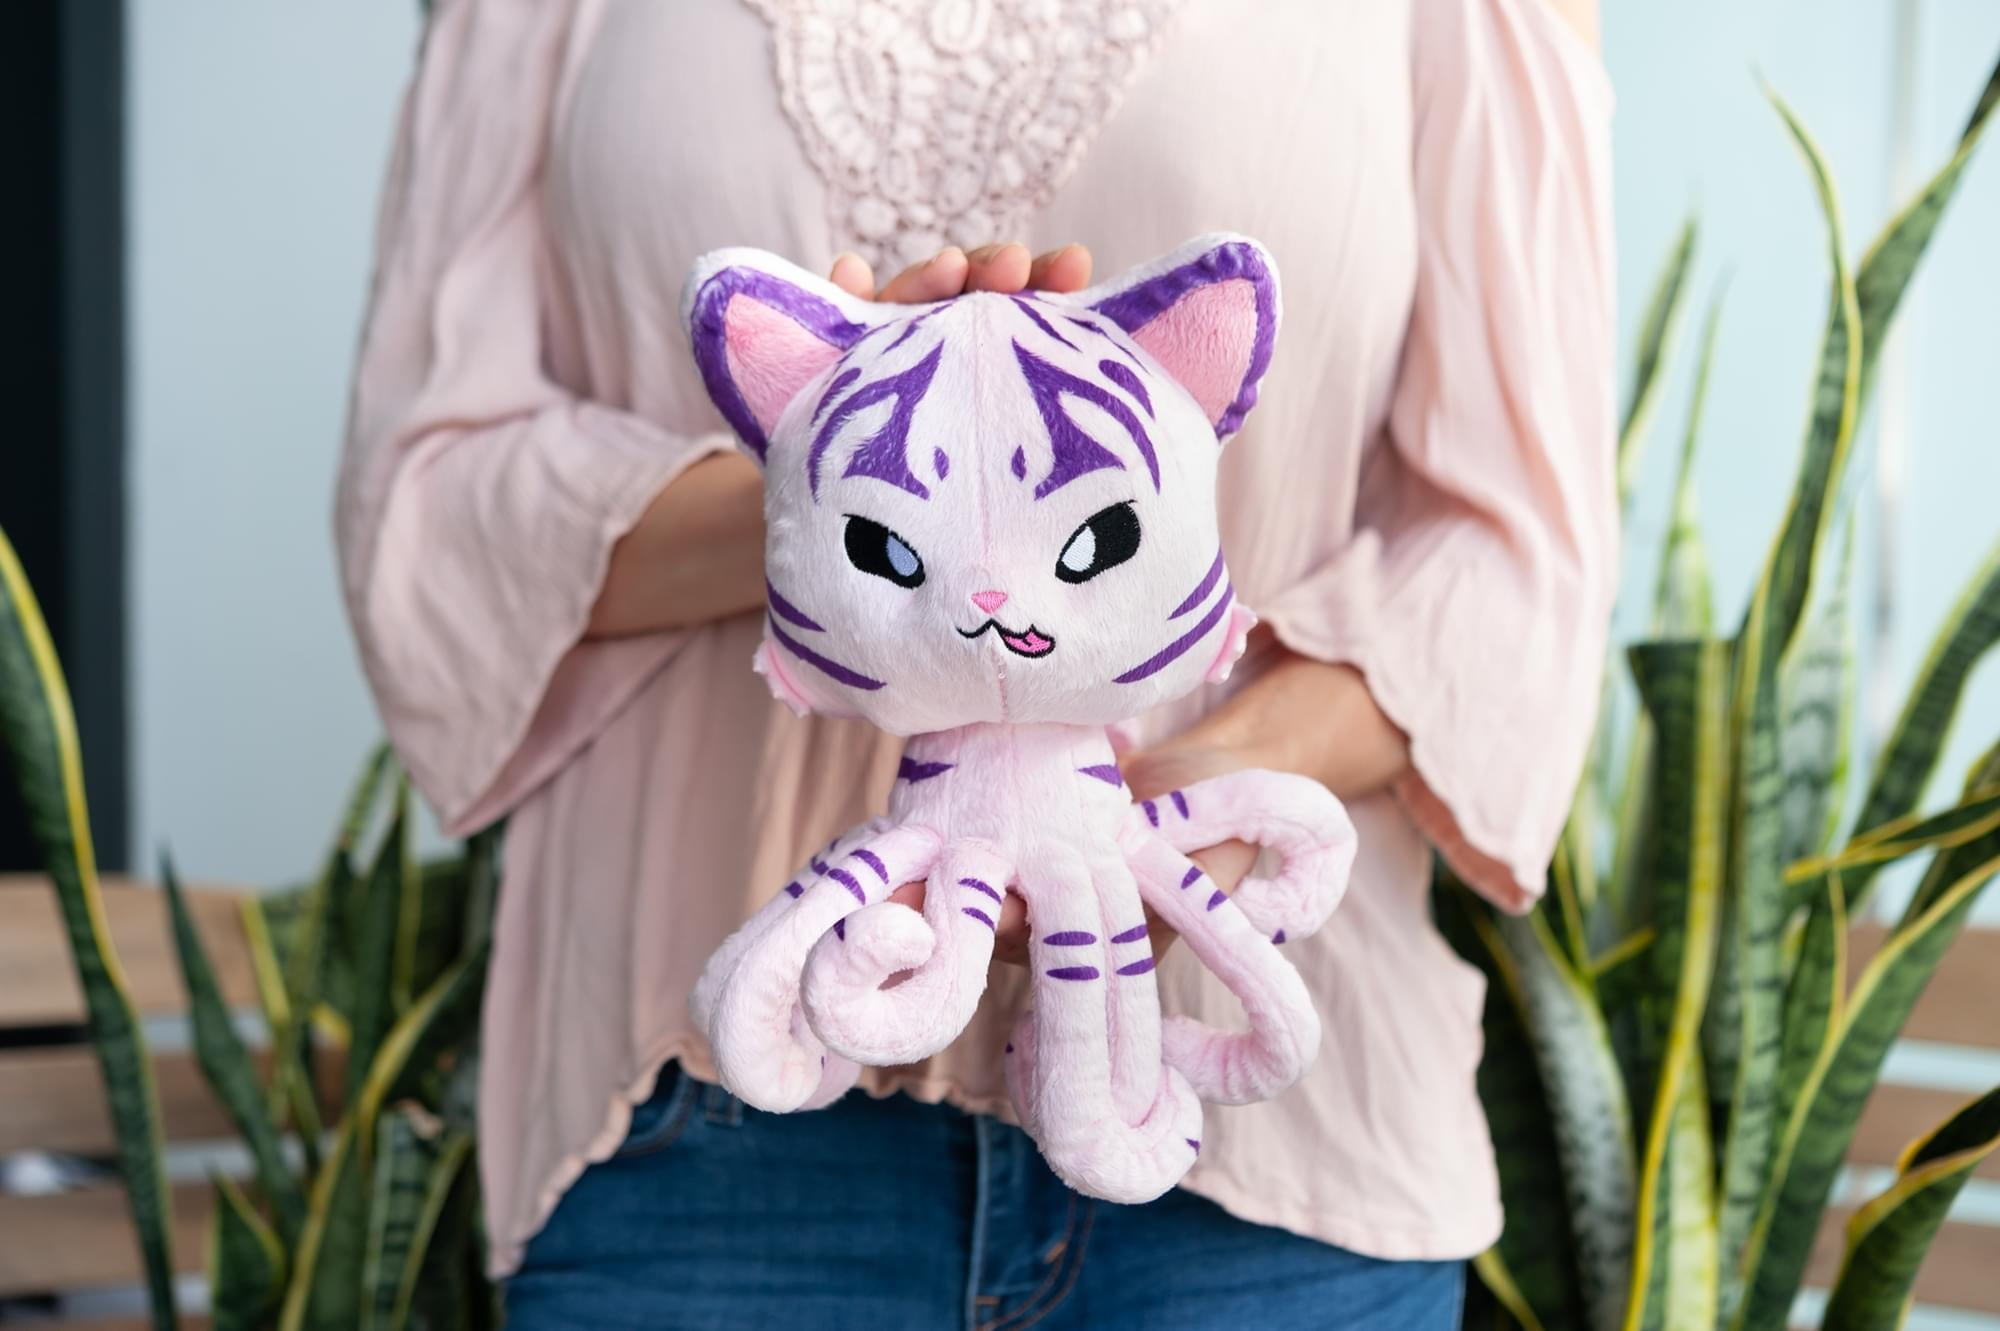 Tentacle Kitty Series Little One The Huntress Plush Collectible | 8 Inches Tall